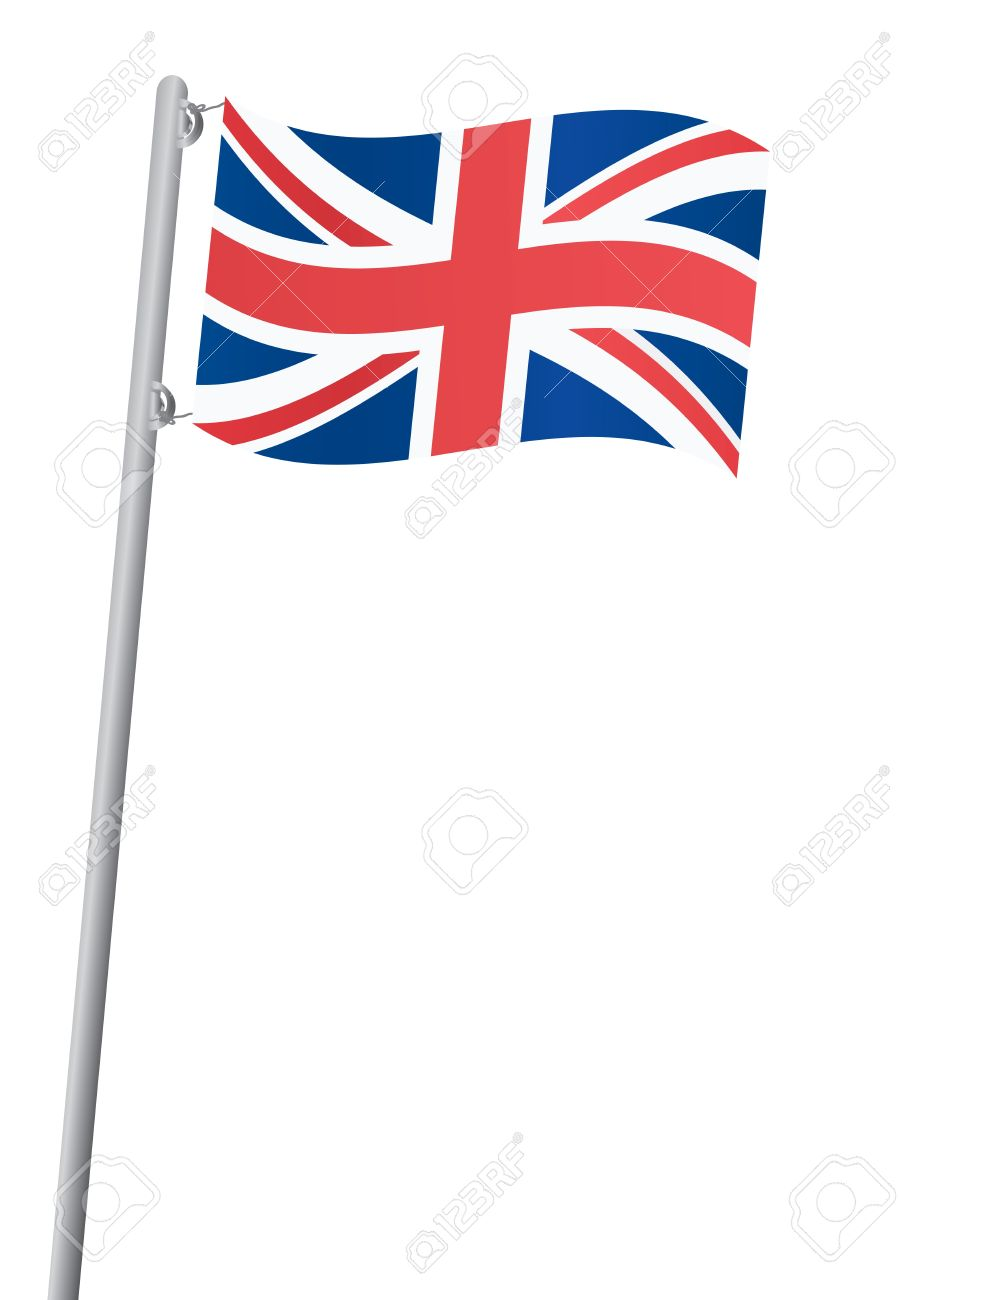 Flag of united kingdom clipart png United Kingdom Flag On A Flagstaff Vector Illustration Royalty ... png